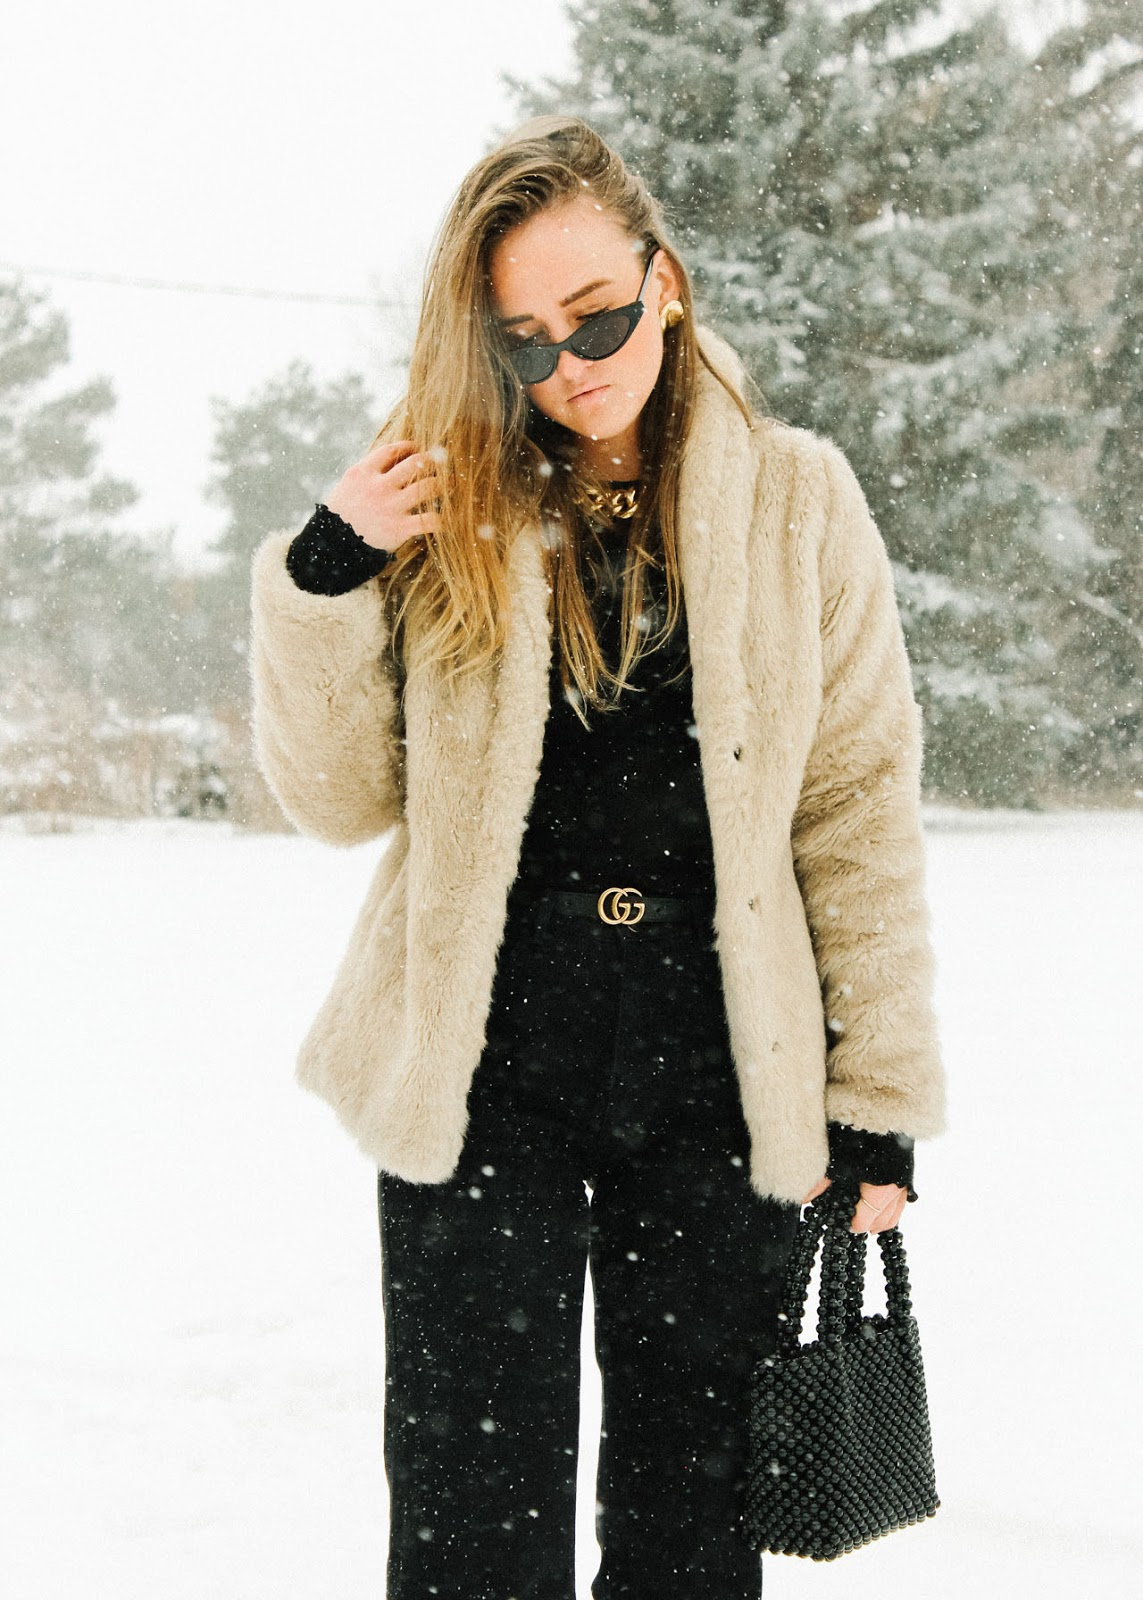 Meant to be - It will be okay - winter style outfit - H&M, Gucci, Zara, Oak and Fort